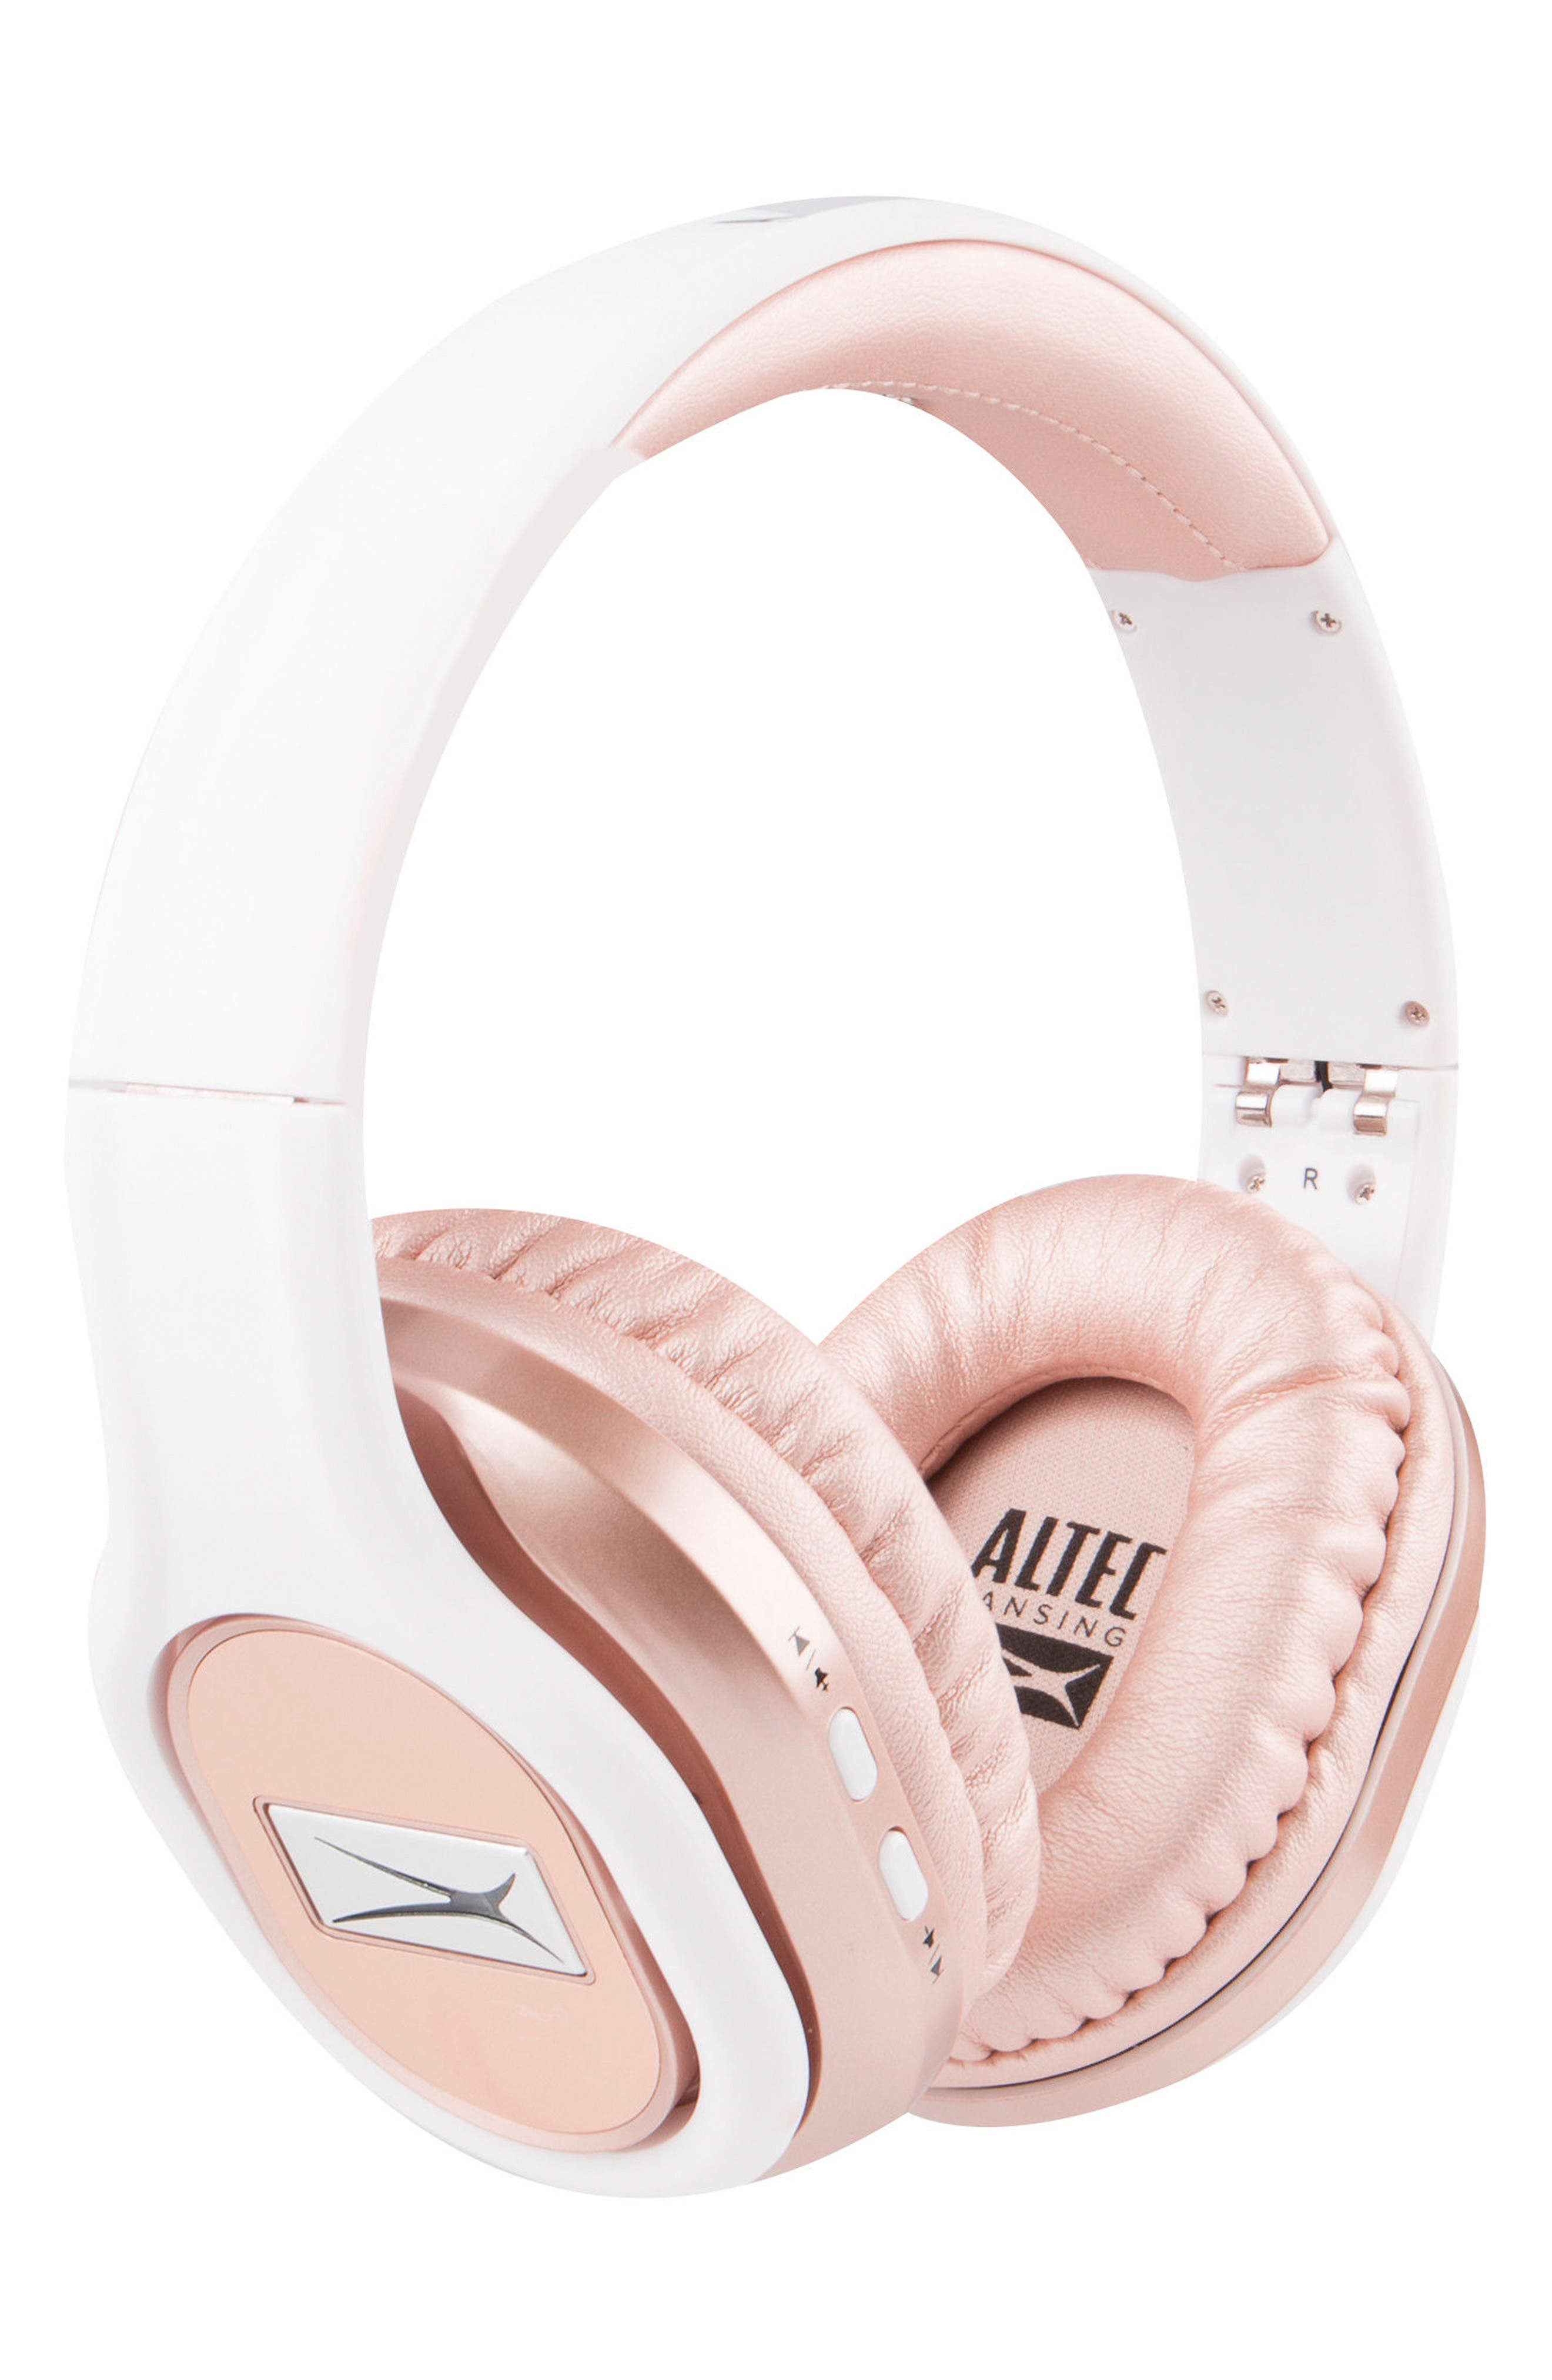 Altec Lansing Evolution 2 Wireless Headphones